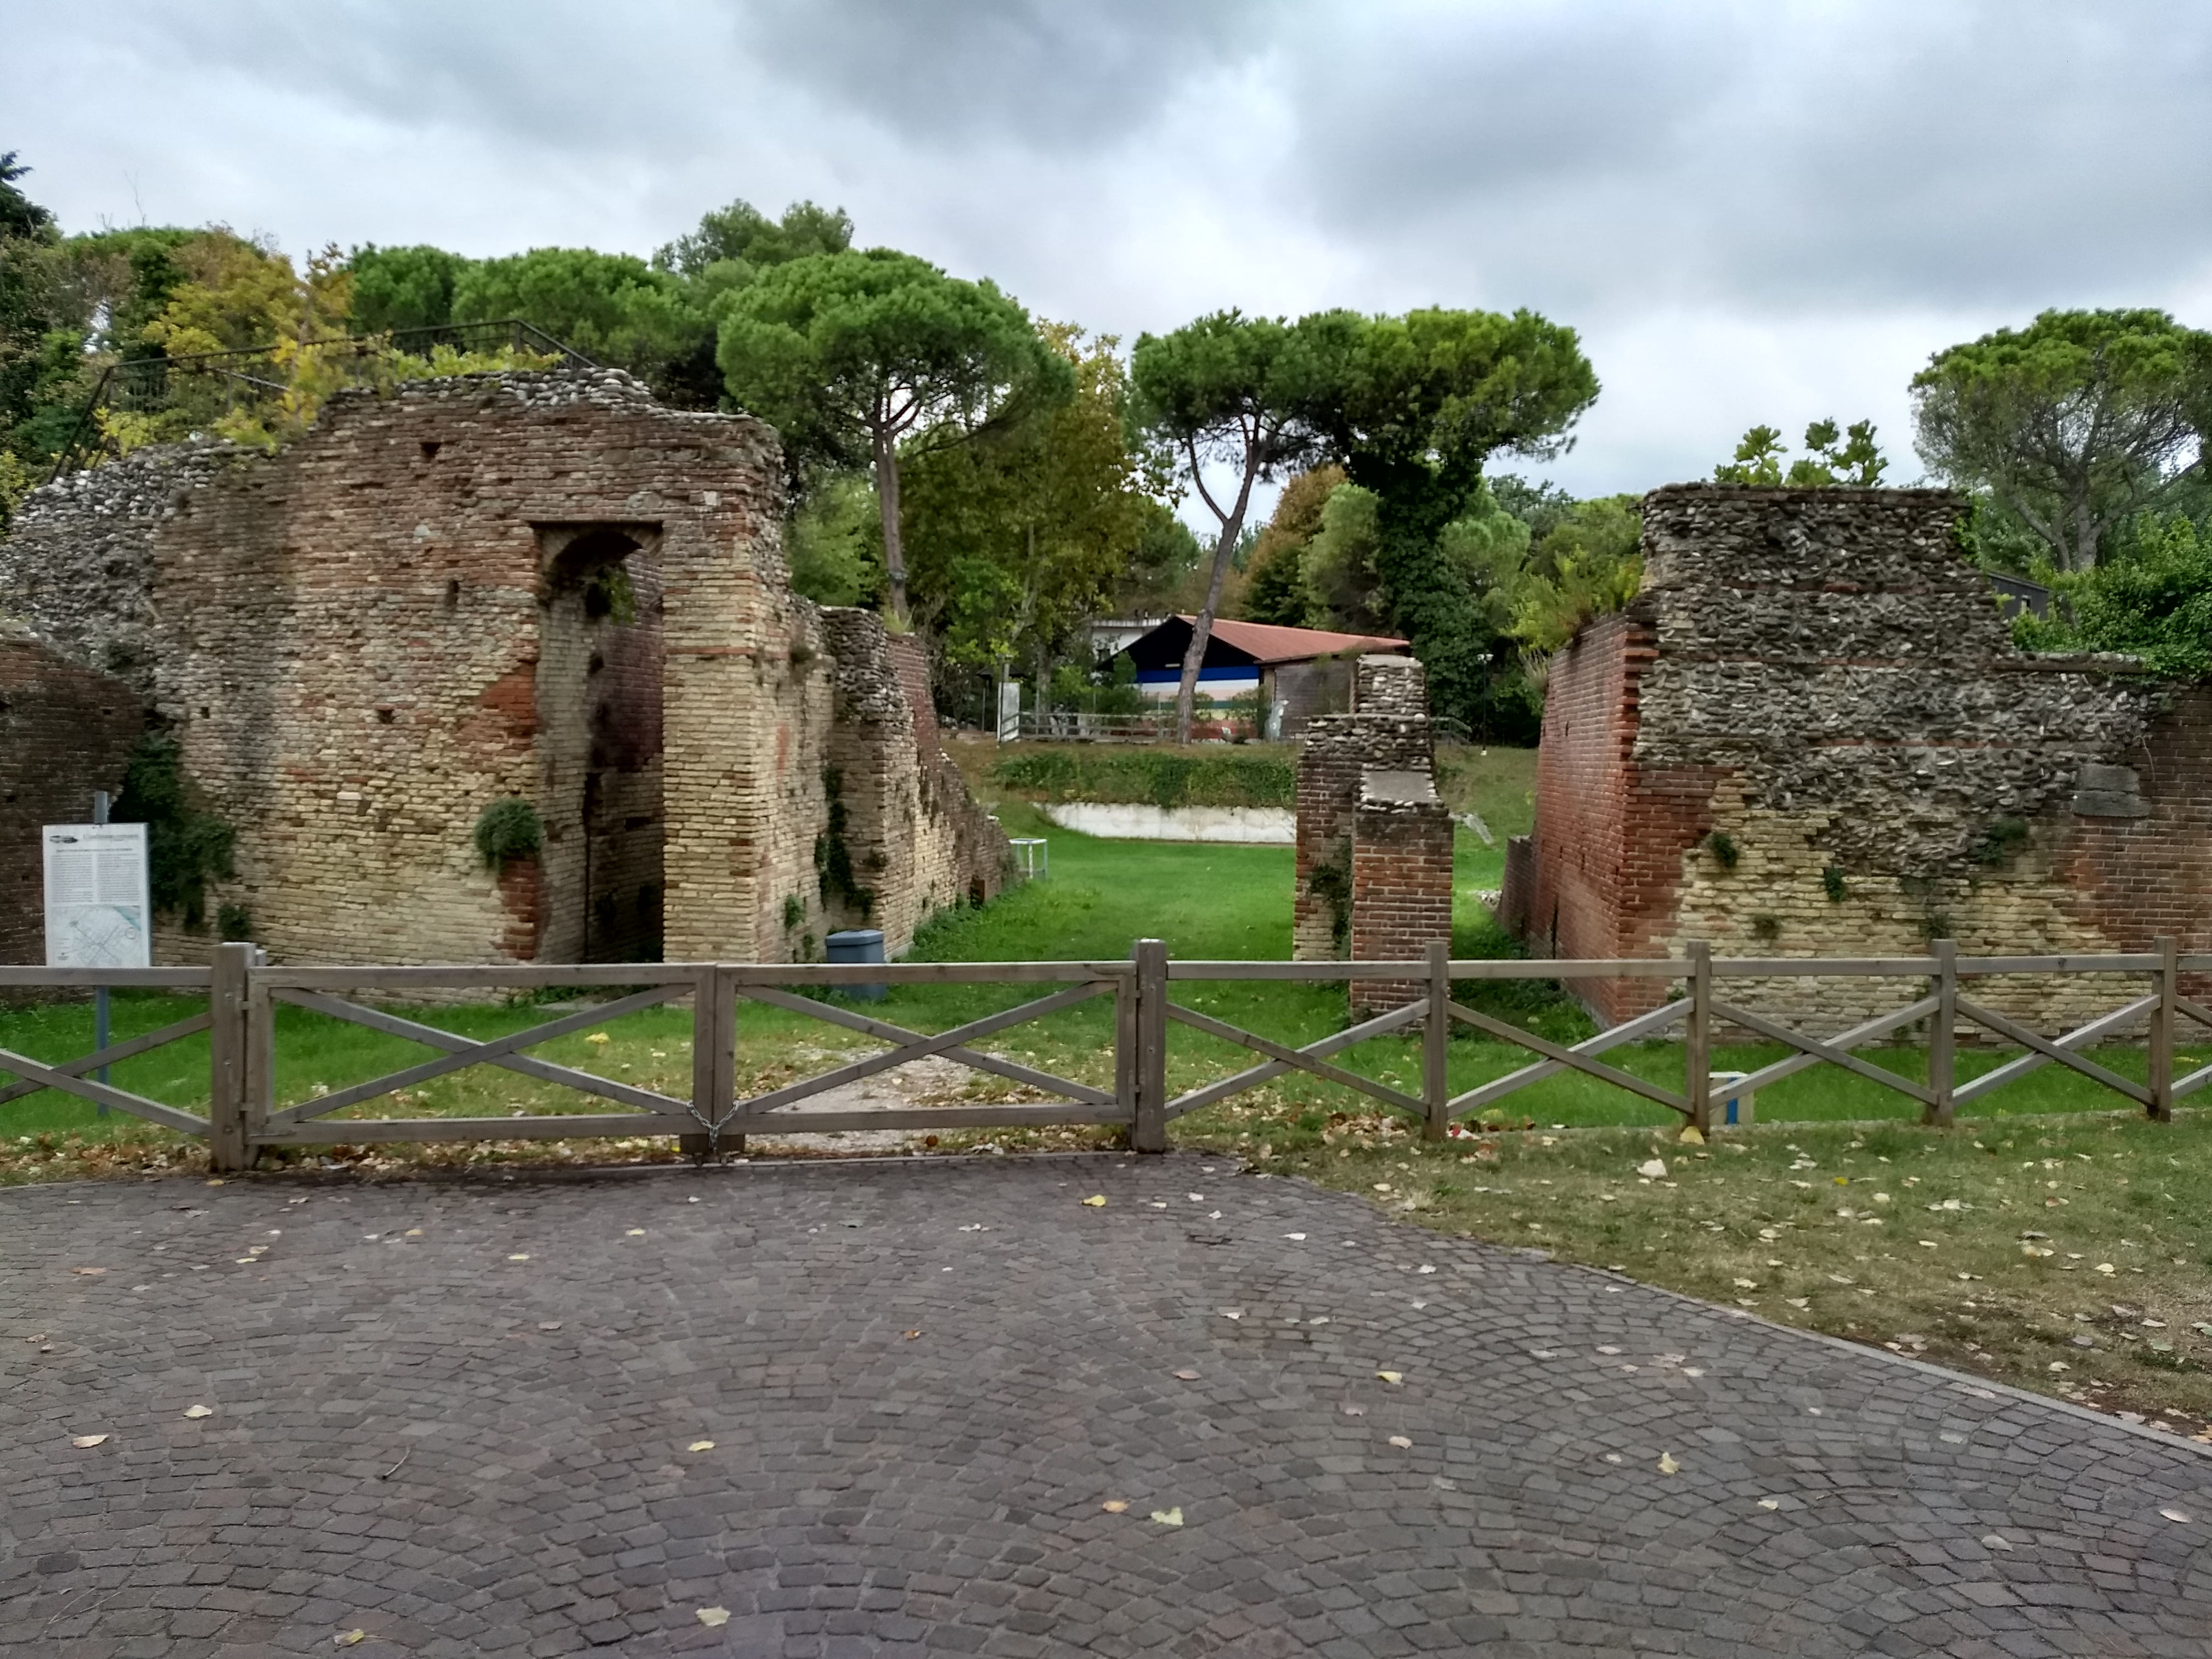 The ruins of a brick-and-concrete structure in a grassy pit with trees and houses in the background